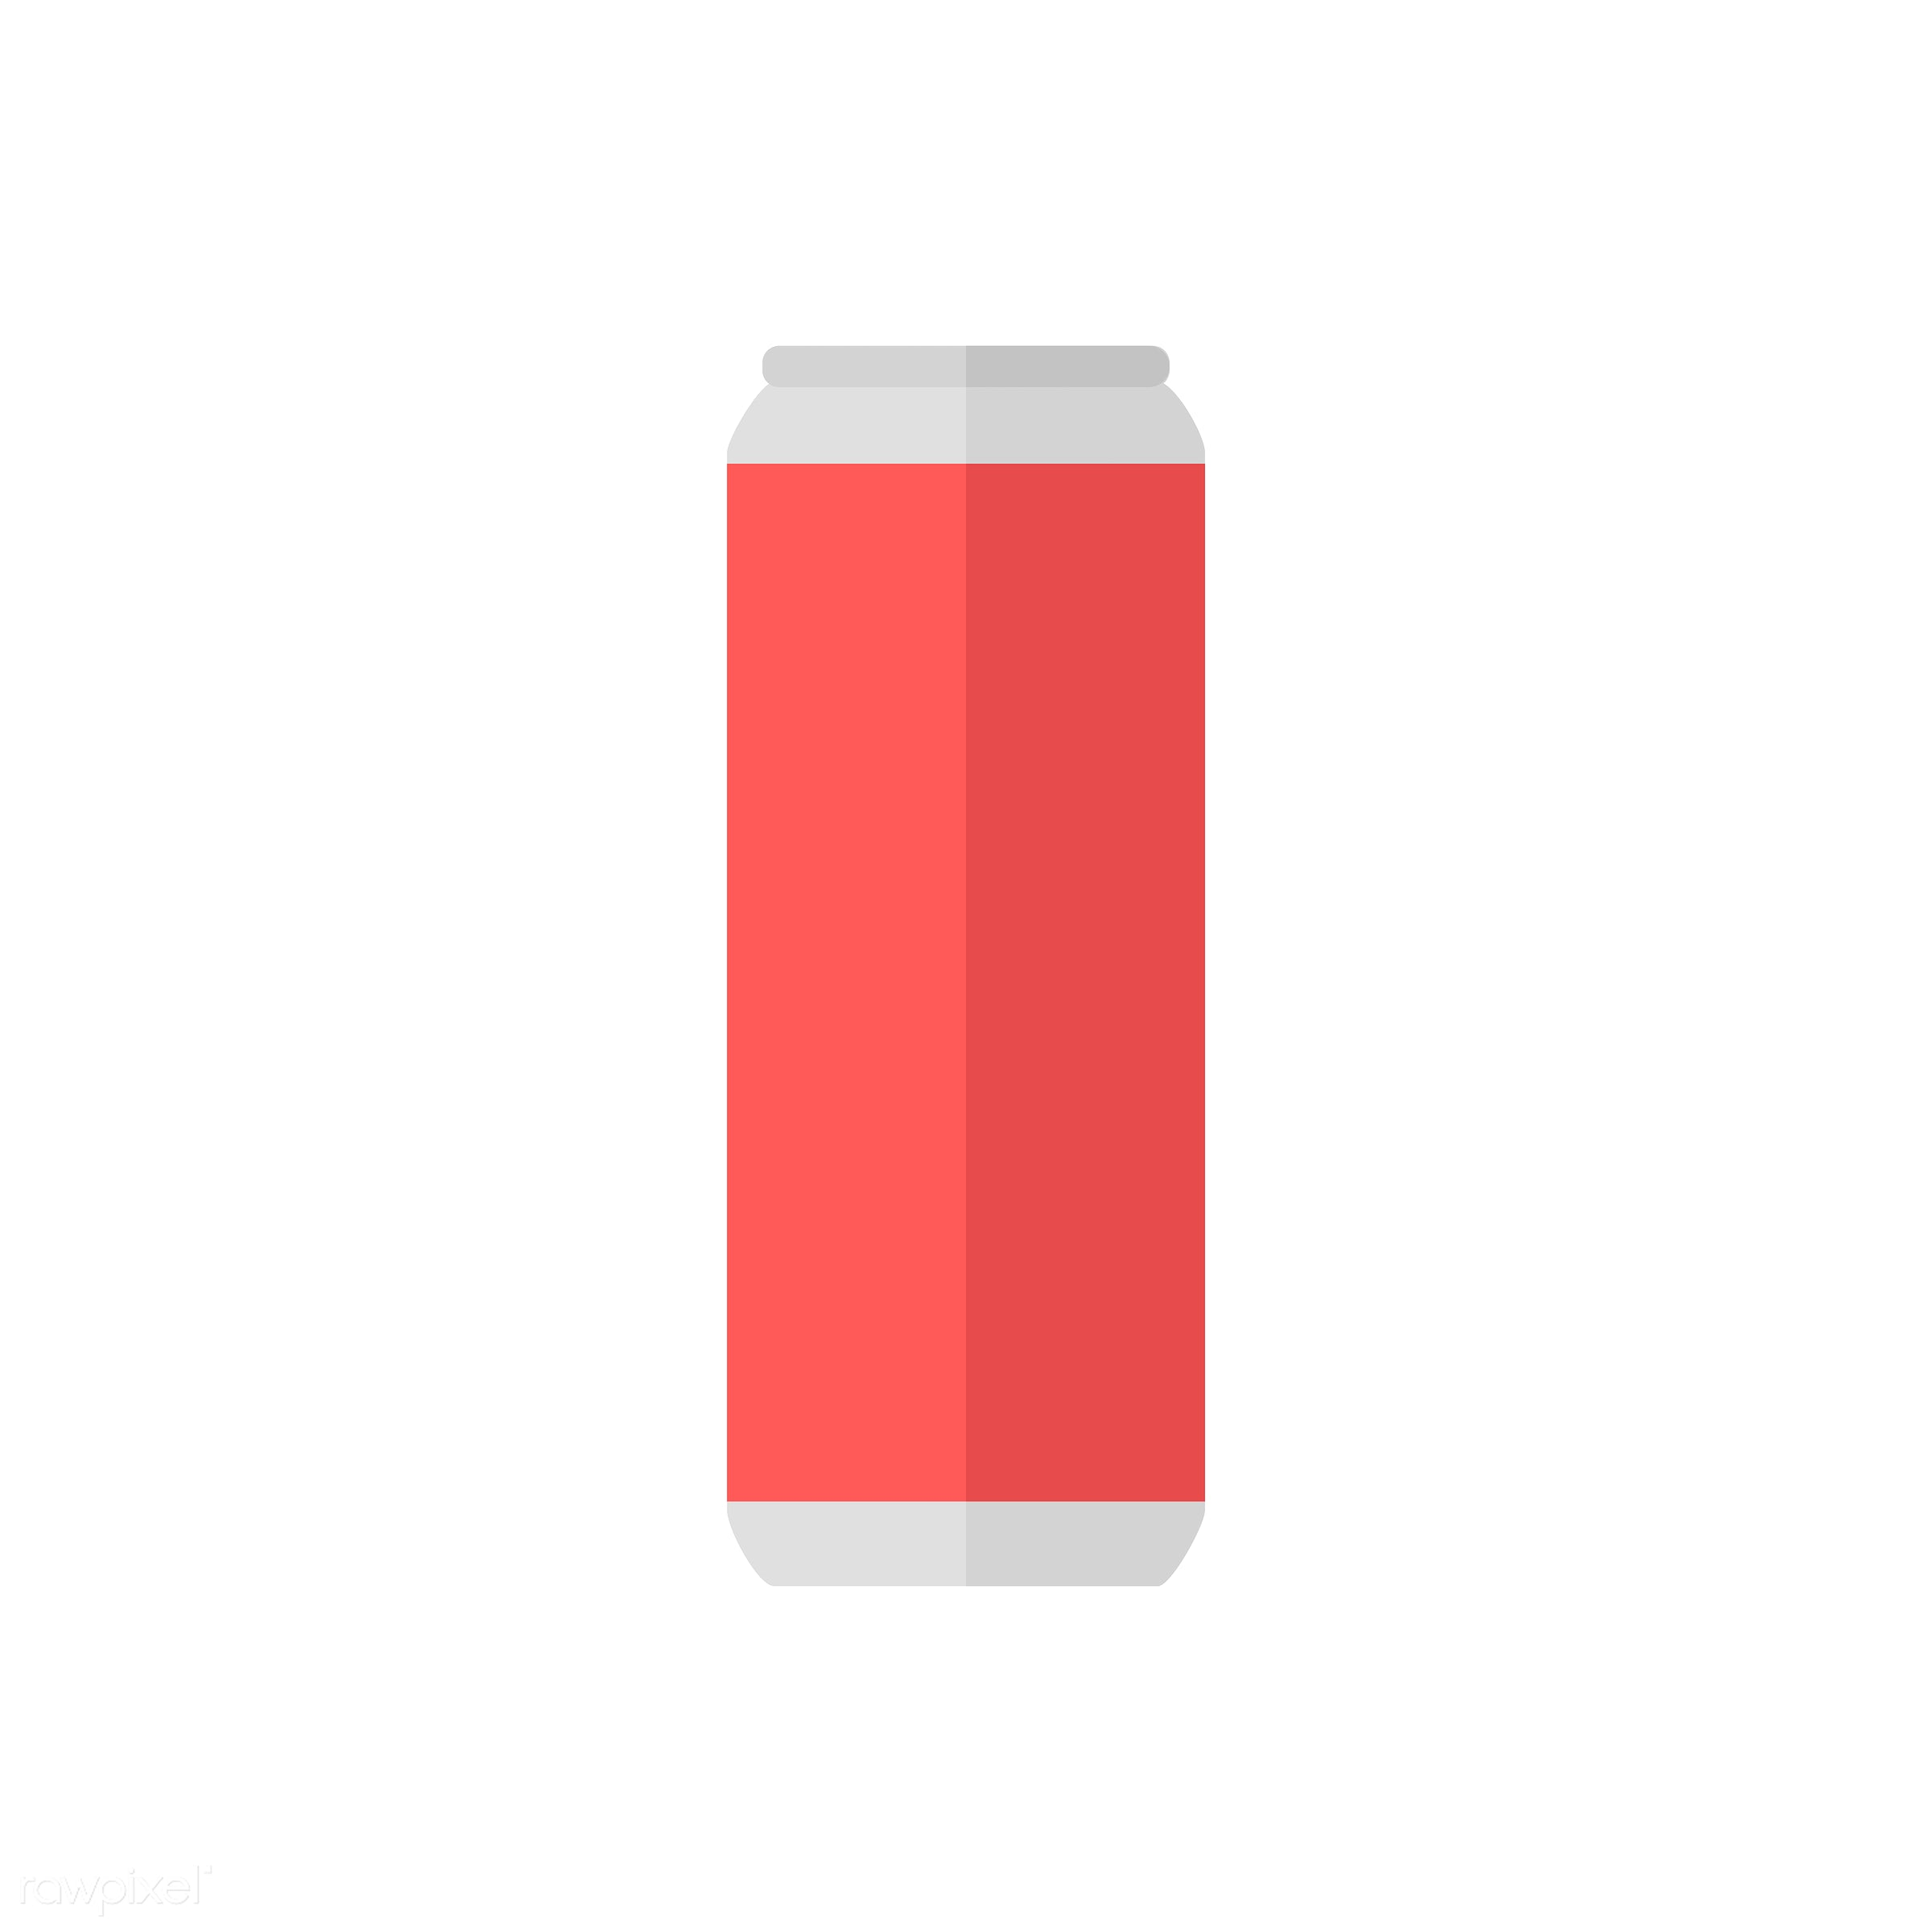 vector, graphic, illustration, icon, symbol, colorful, cute, drink, beverage, water, can, beer can, soda can, tin can